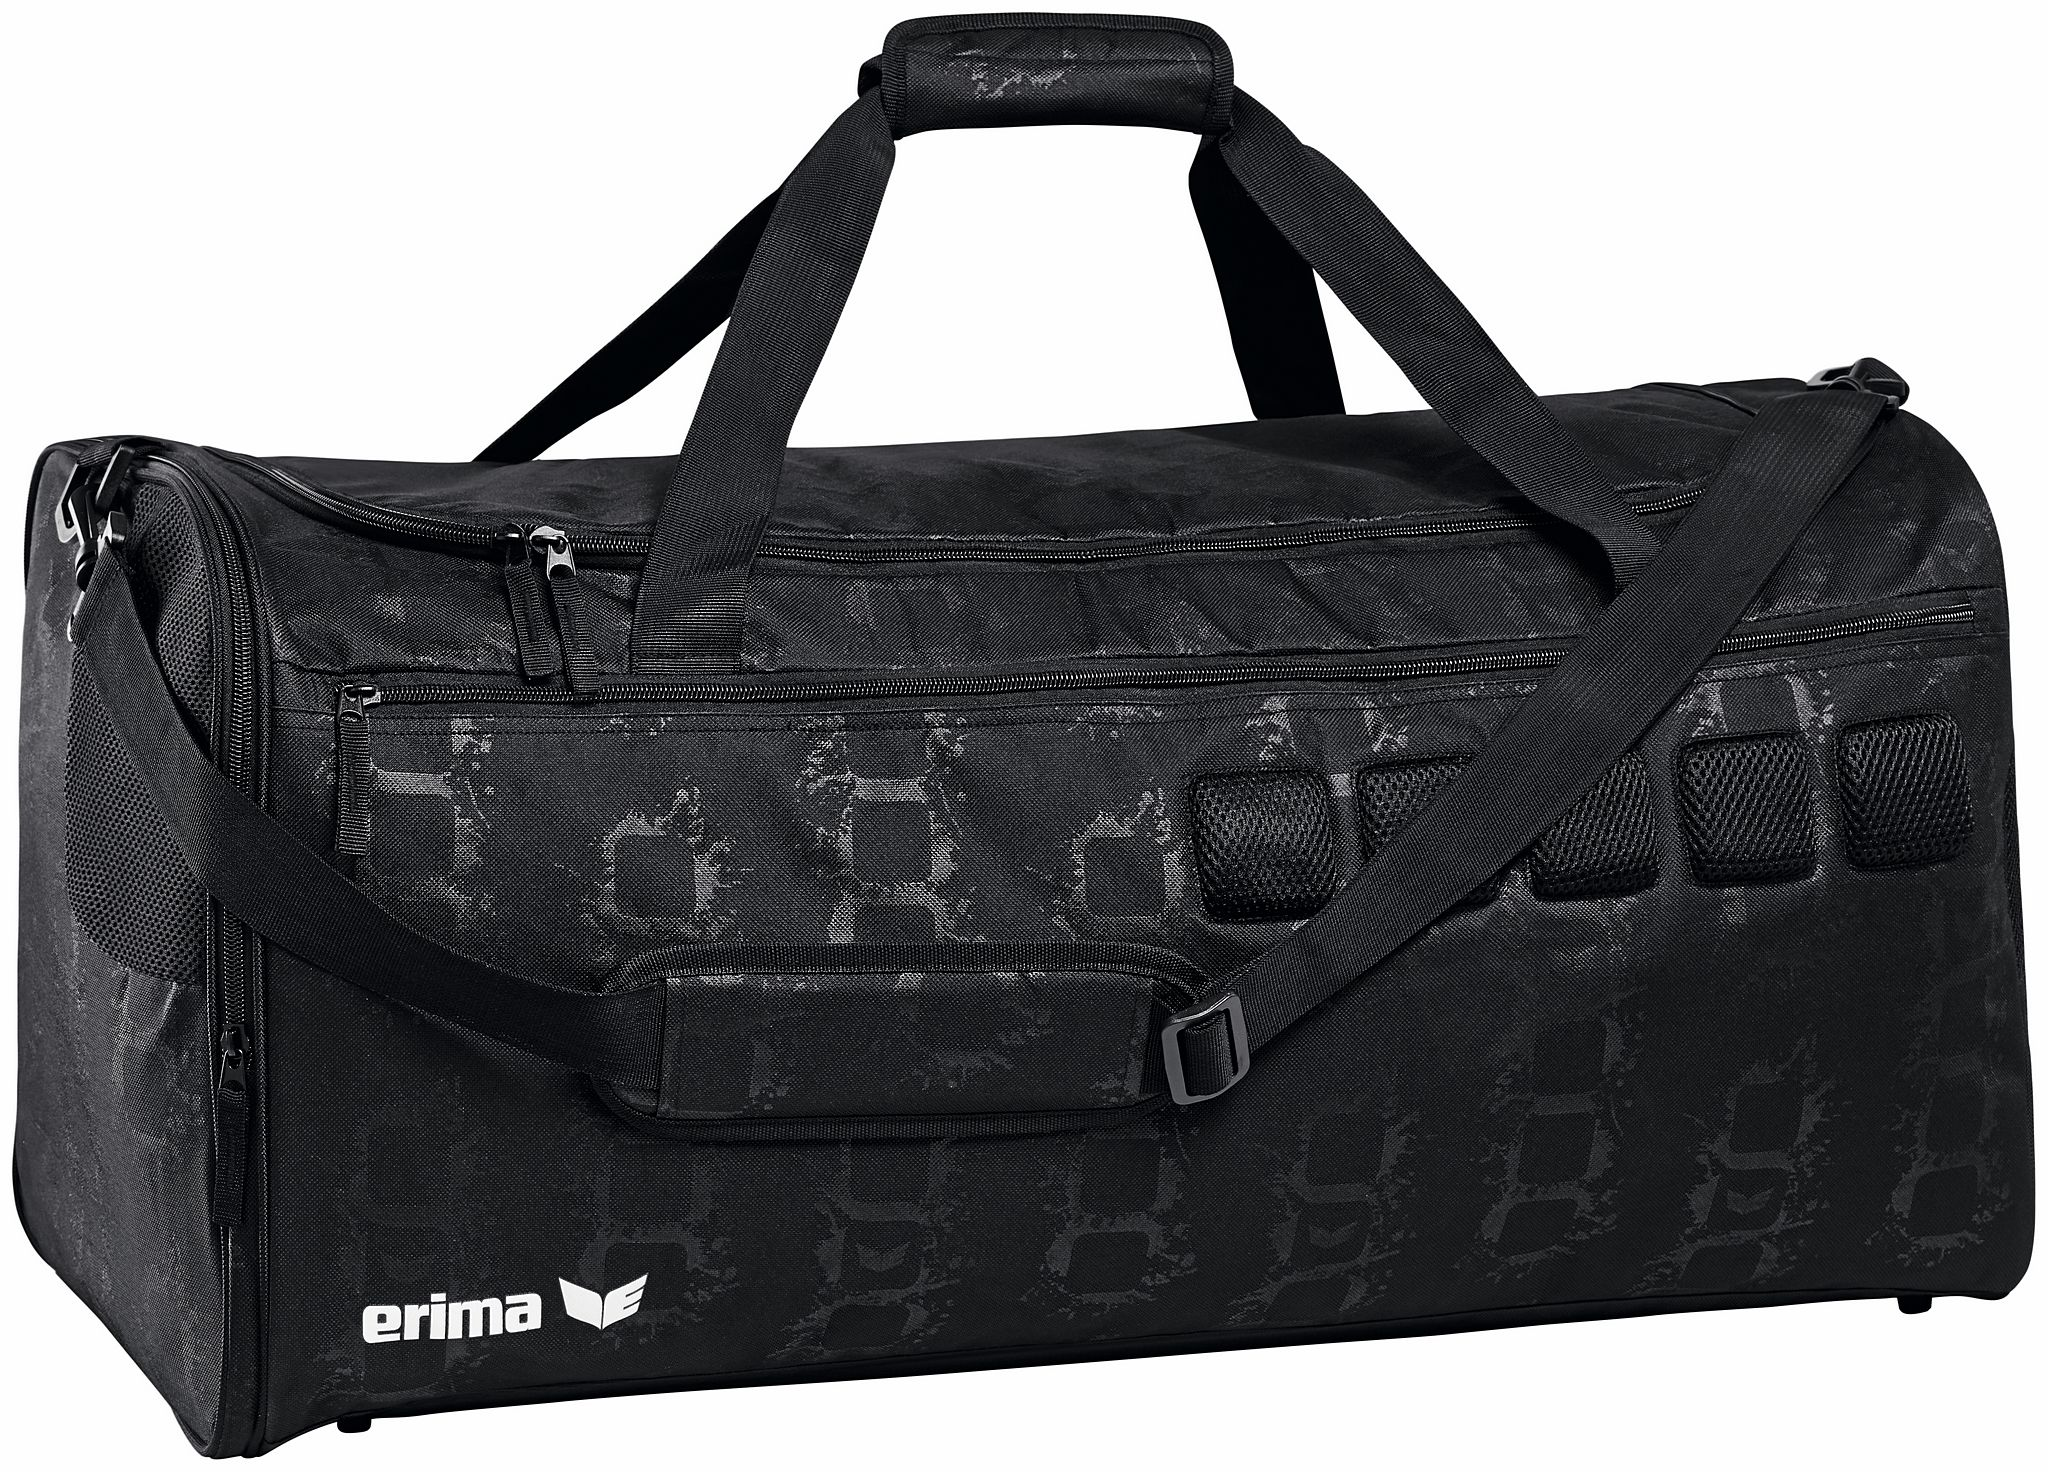 Graffic 5 -C sports bag, Bag